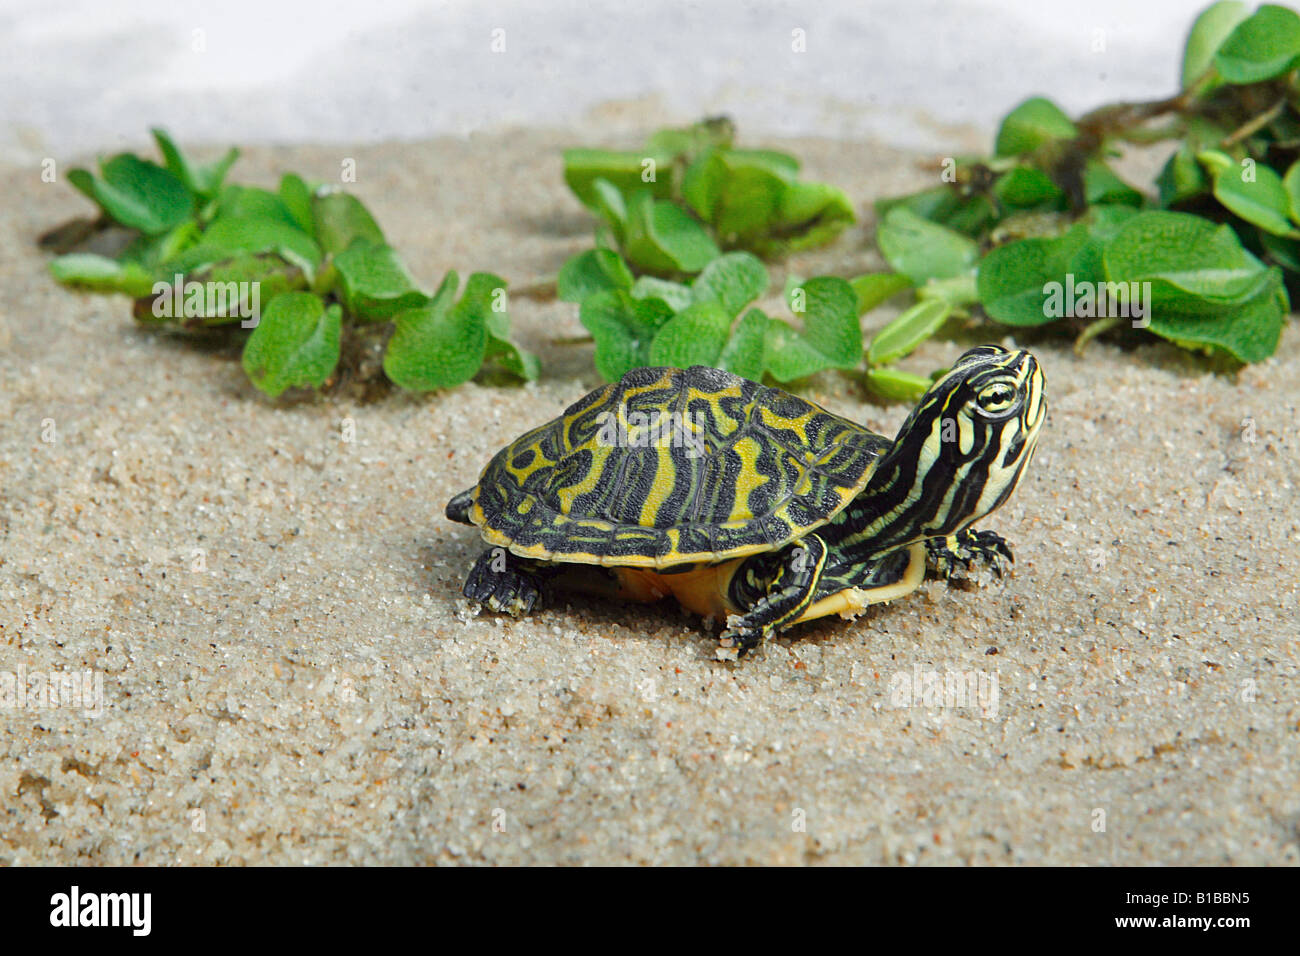 Young yellow bellied slider trachemys scripta scripta for Trachemys scripta